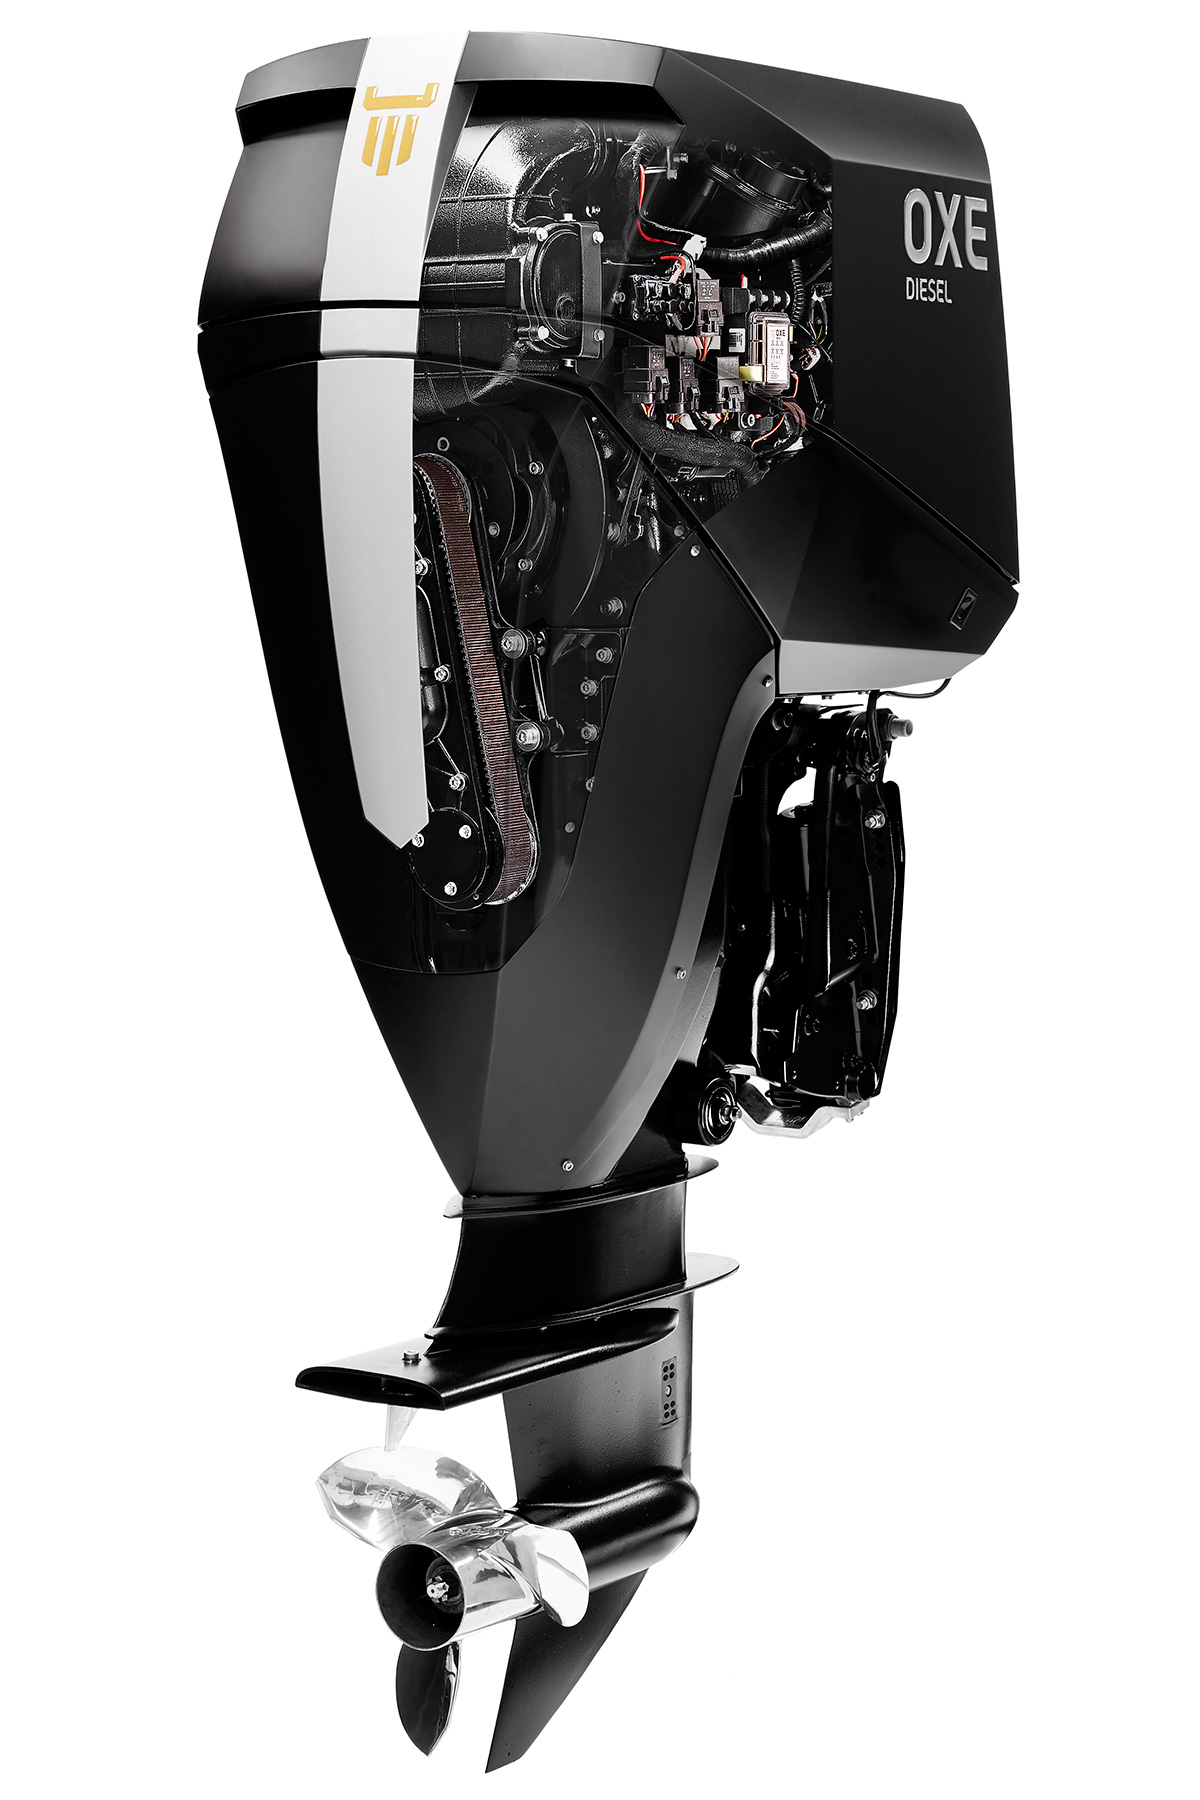 Oxe 200hp diesel outboard engine tested page 2 of 3 for Best 8 hp outboard motor